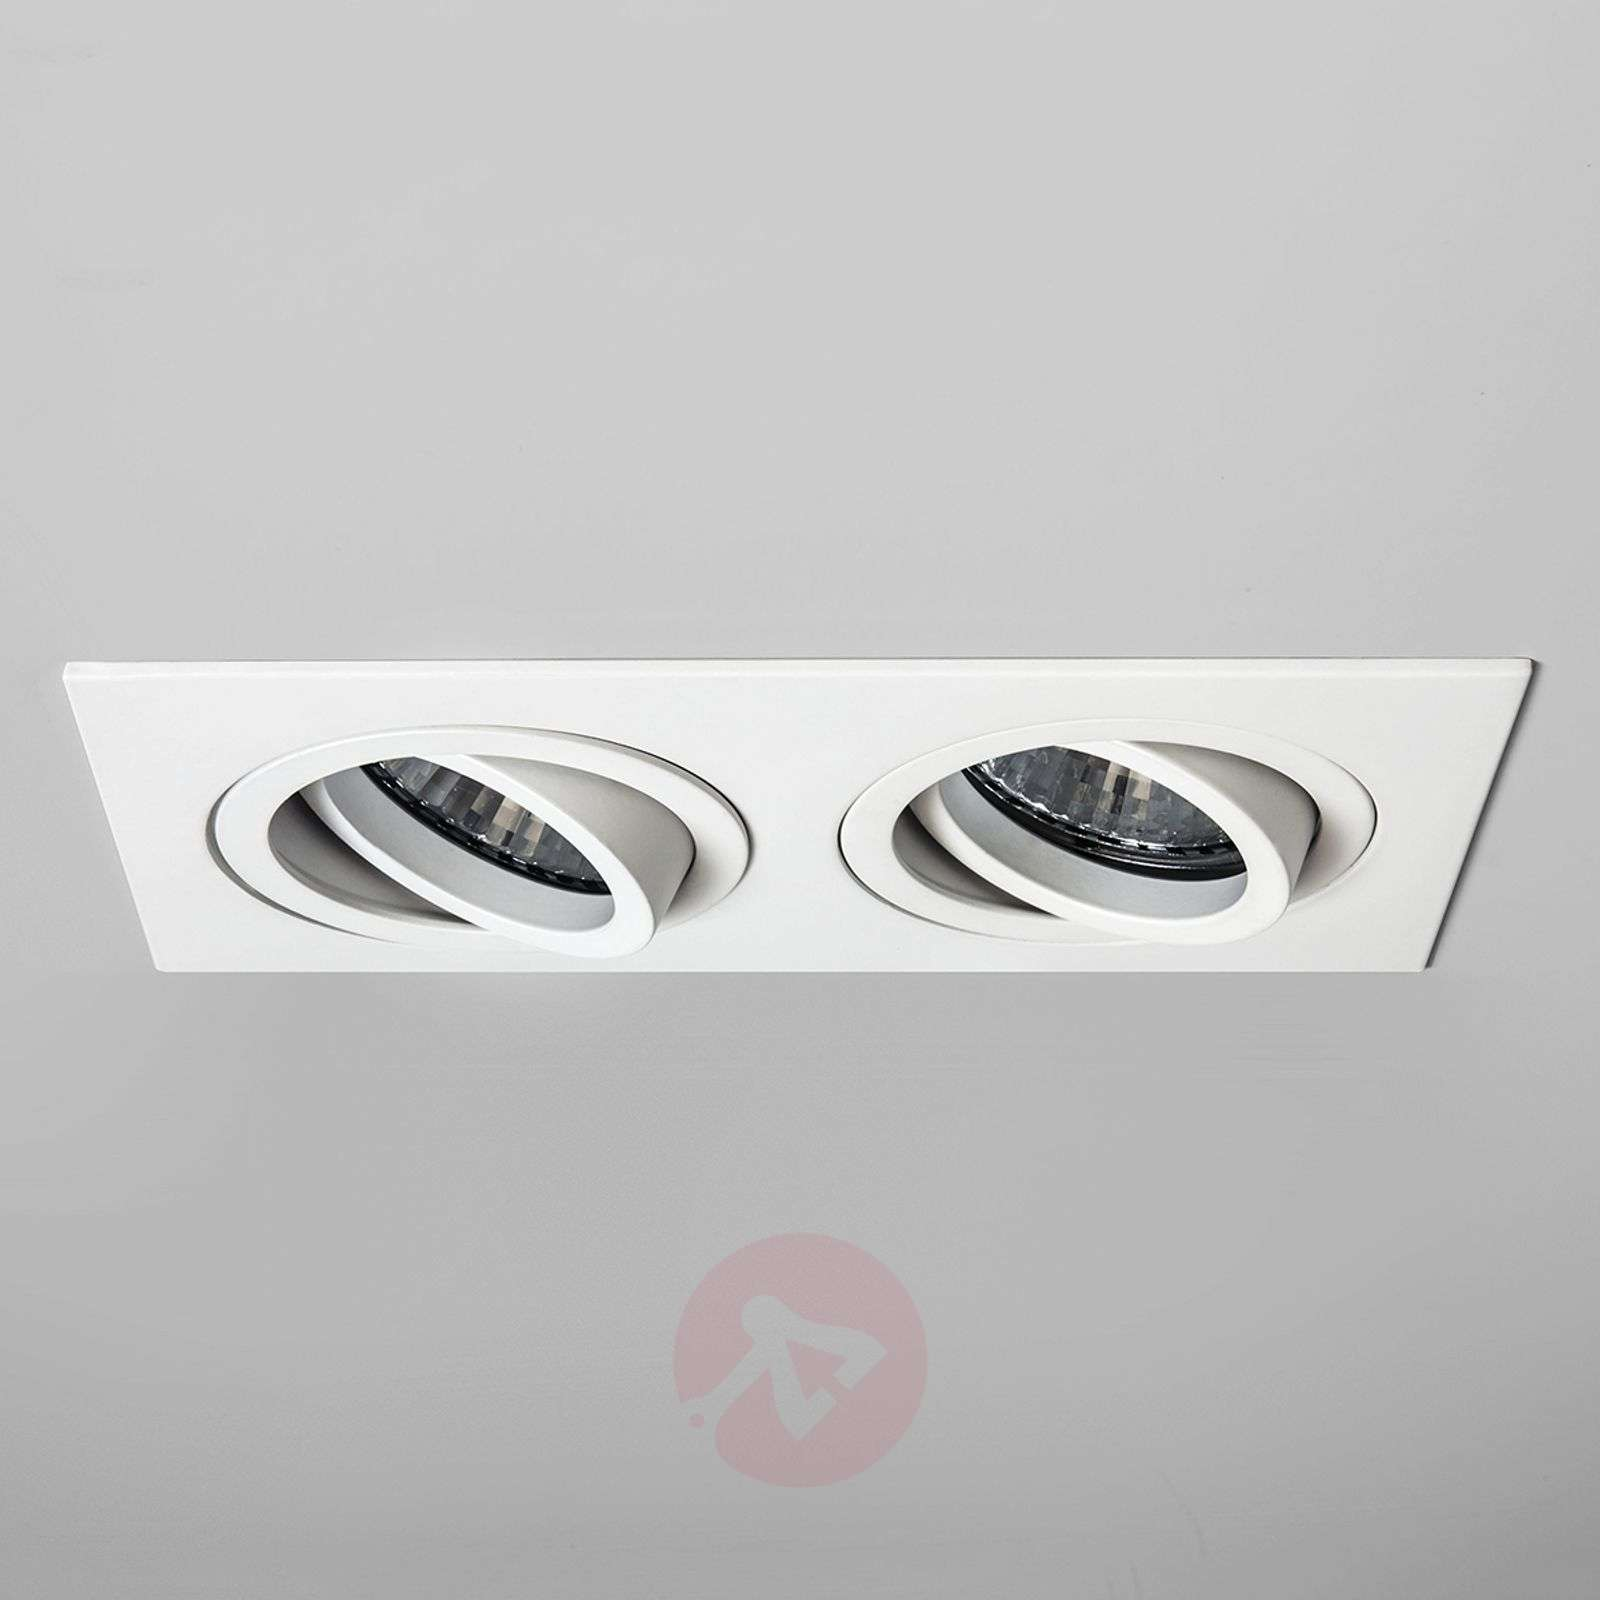 Downlight TARO TWIN-1020352X-01